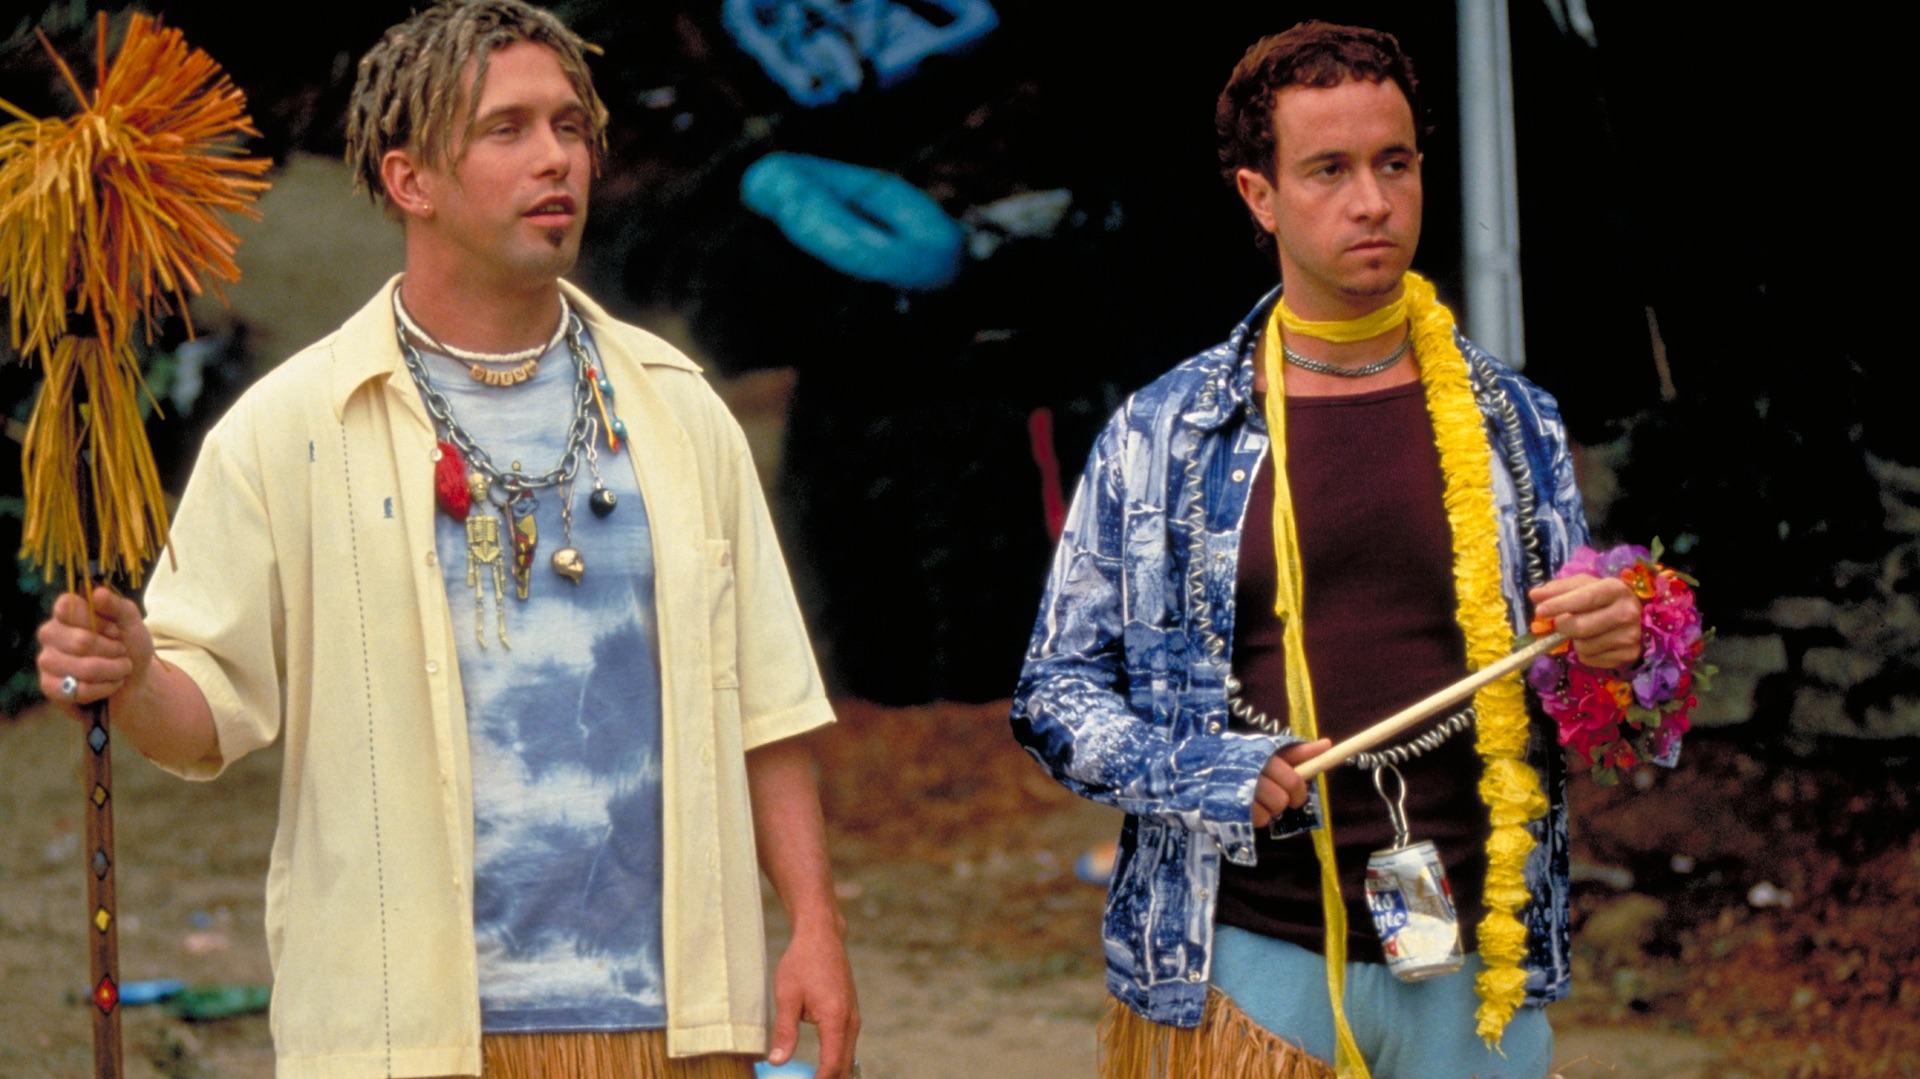 The Under-appreciated Films of Pauly Shore